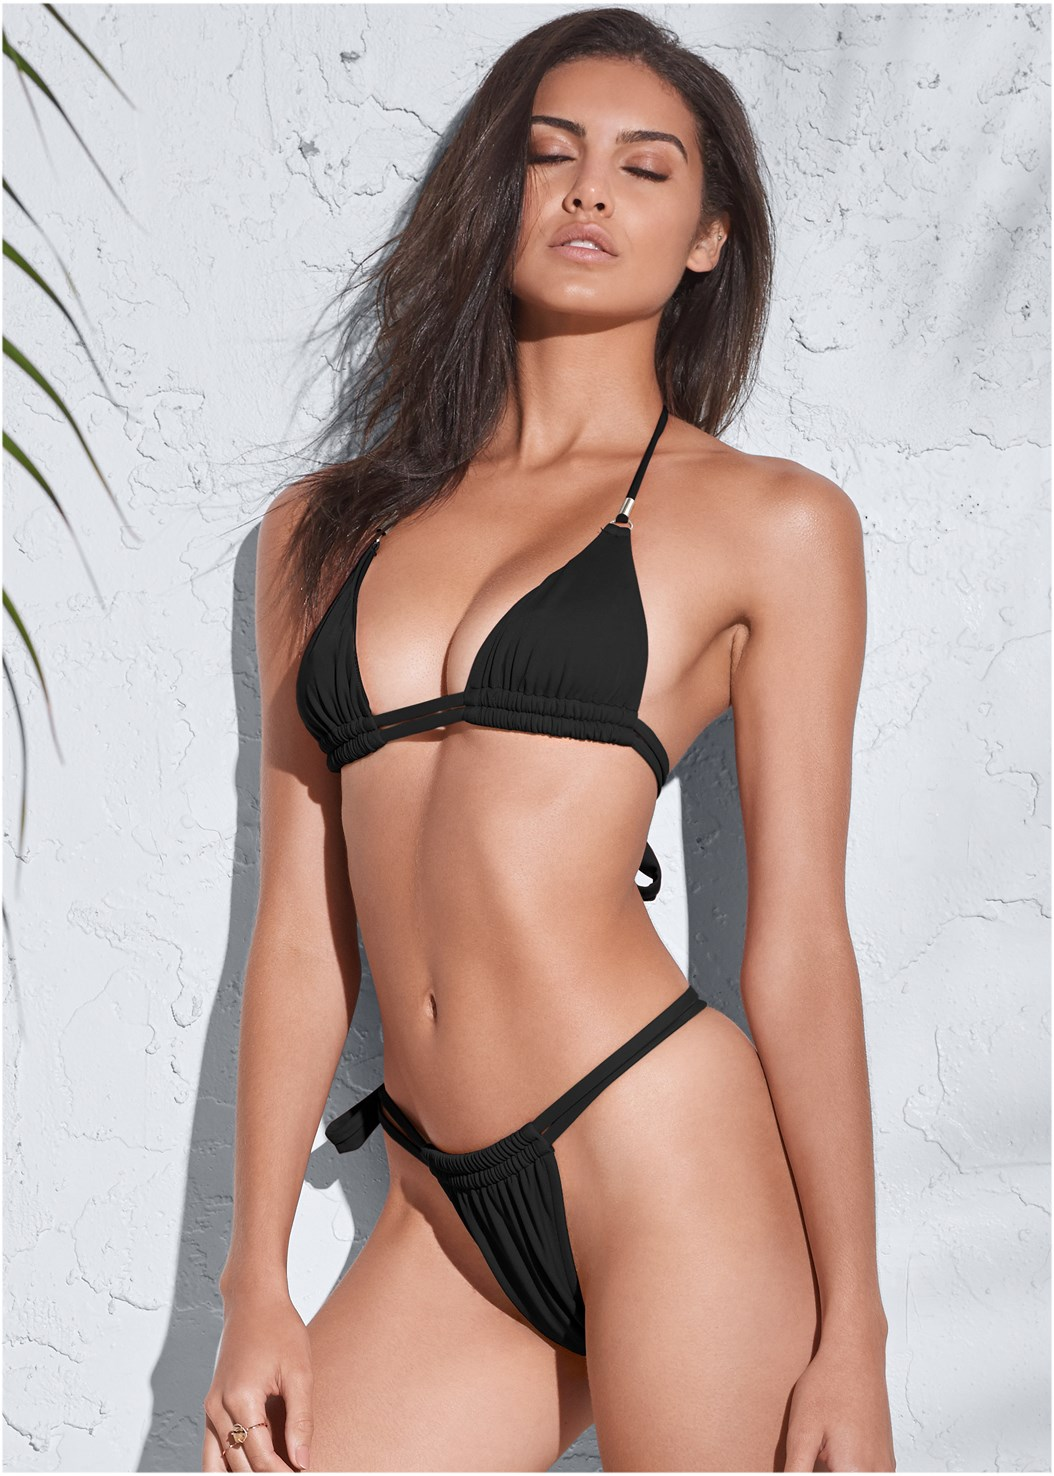 Sports Illustrated Swim™ Double Strap Triangle,Sports Illustrated Swim™ Adjustable Coverage Bottom,Sports Illustrated Swim™ Tie Side String Bottom,Sports Illustrated Swim™ Cut Out Sides Bottom,Sports Illustrated Swim™ Strappy Banded Bottom